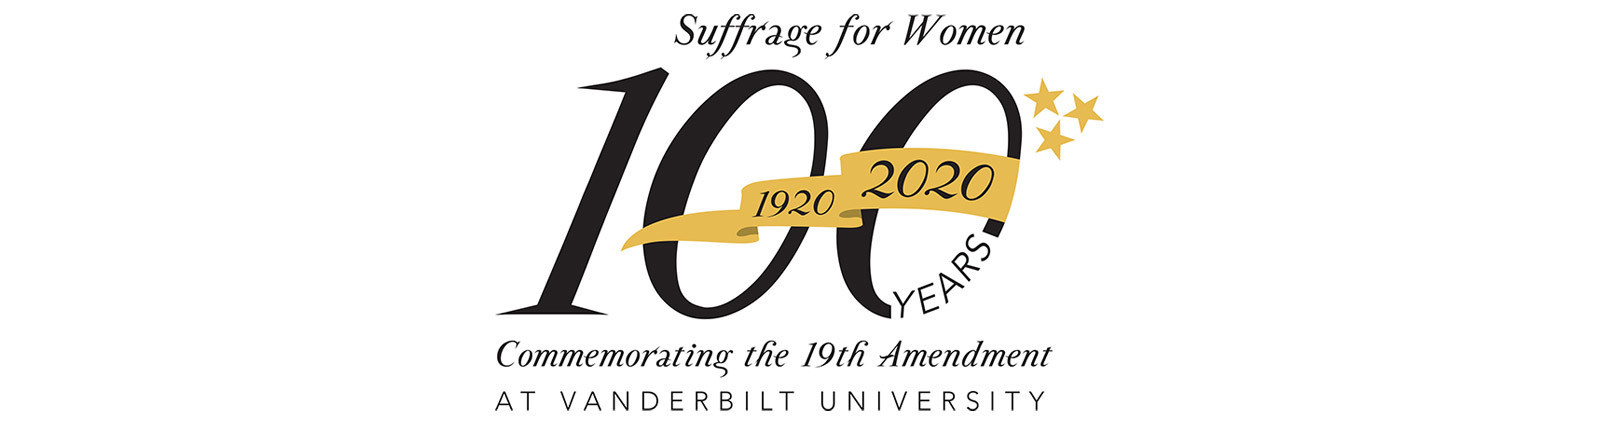 Throughout 2020, Vanderbilt will mark the 100th anniversary of the ratification of the 19th Amendment.